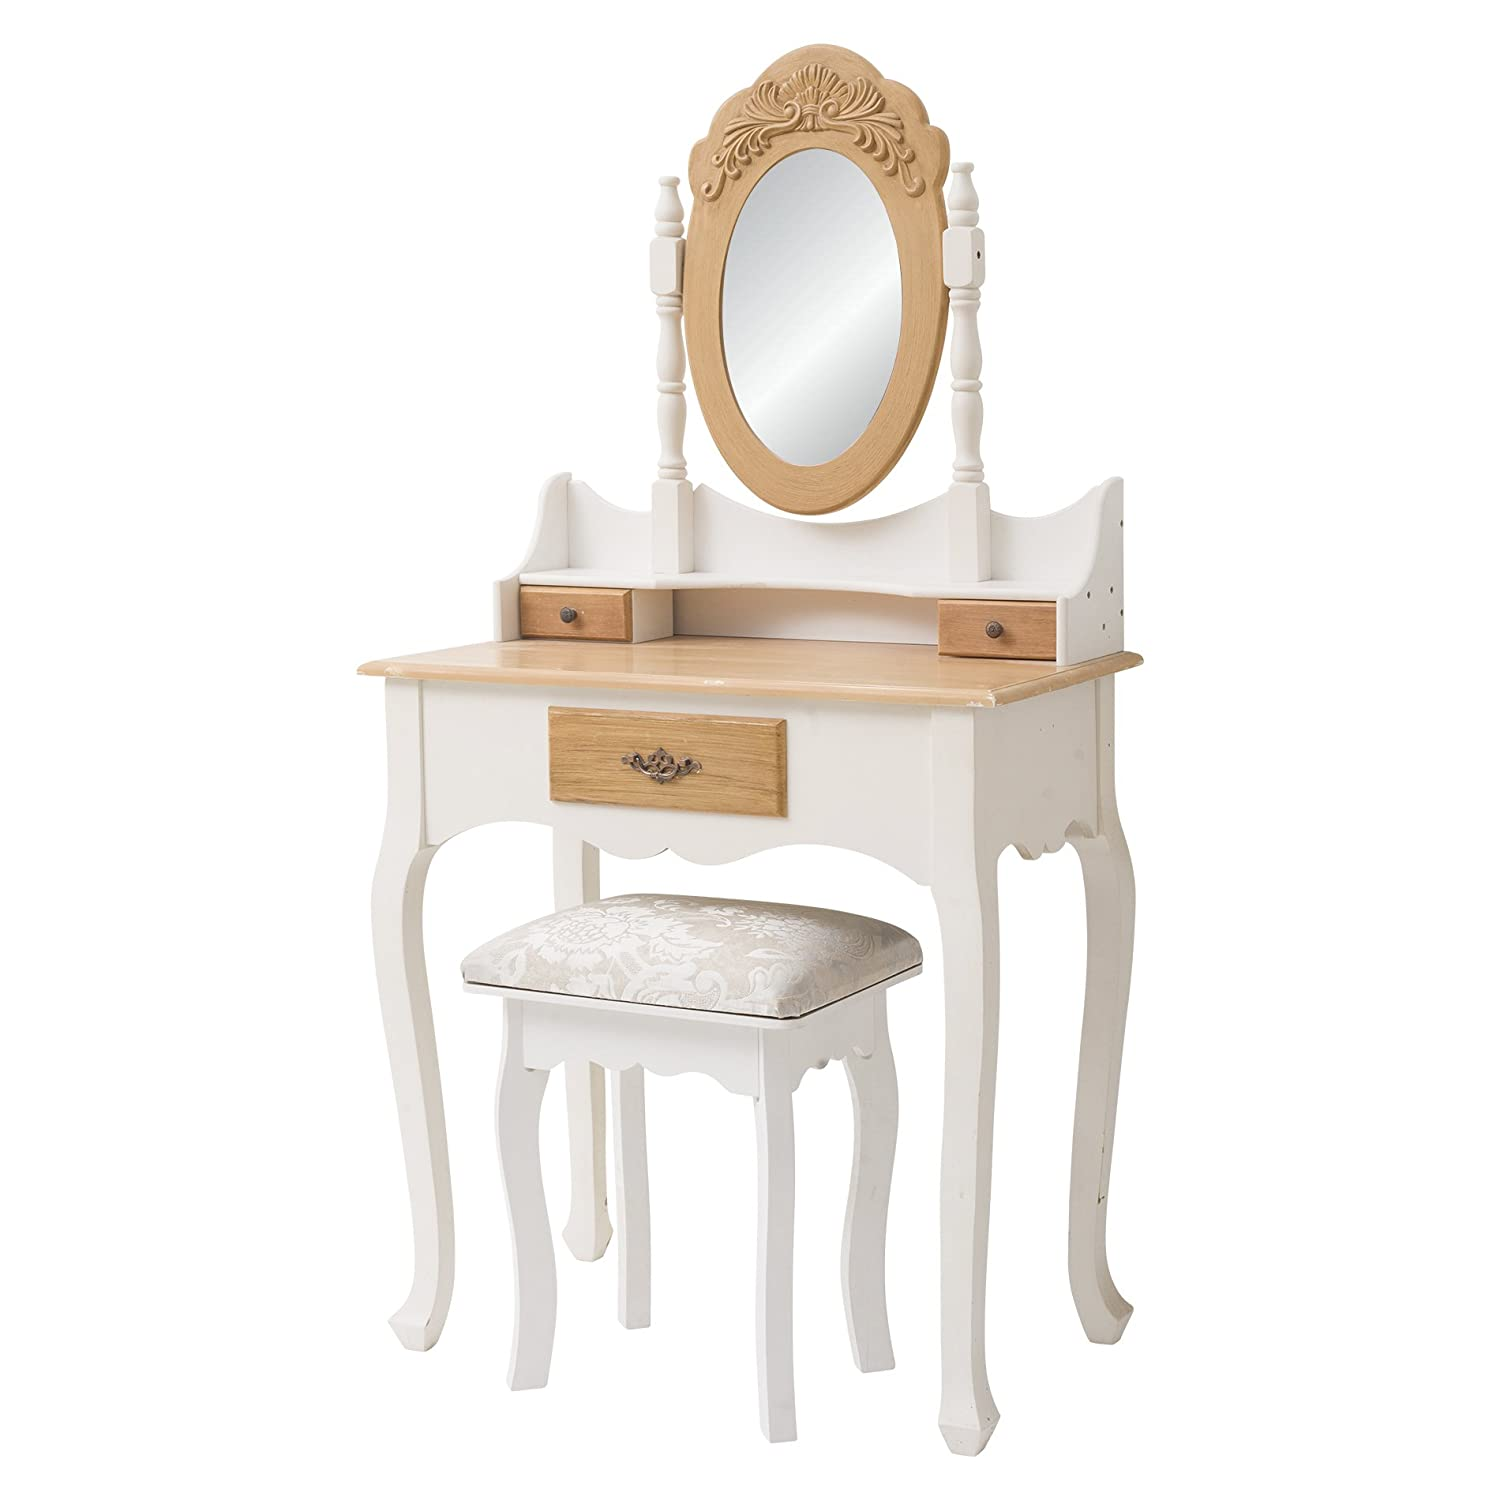 Rebecca Srl Coiffeuse Coiffeuse Table De Maquillage 3 Tiroirs 1